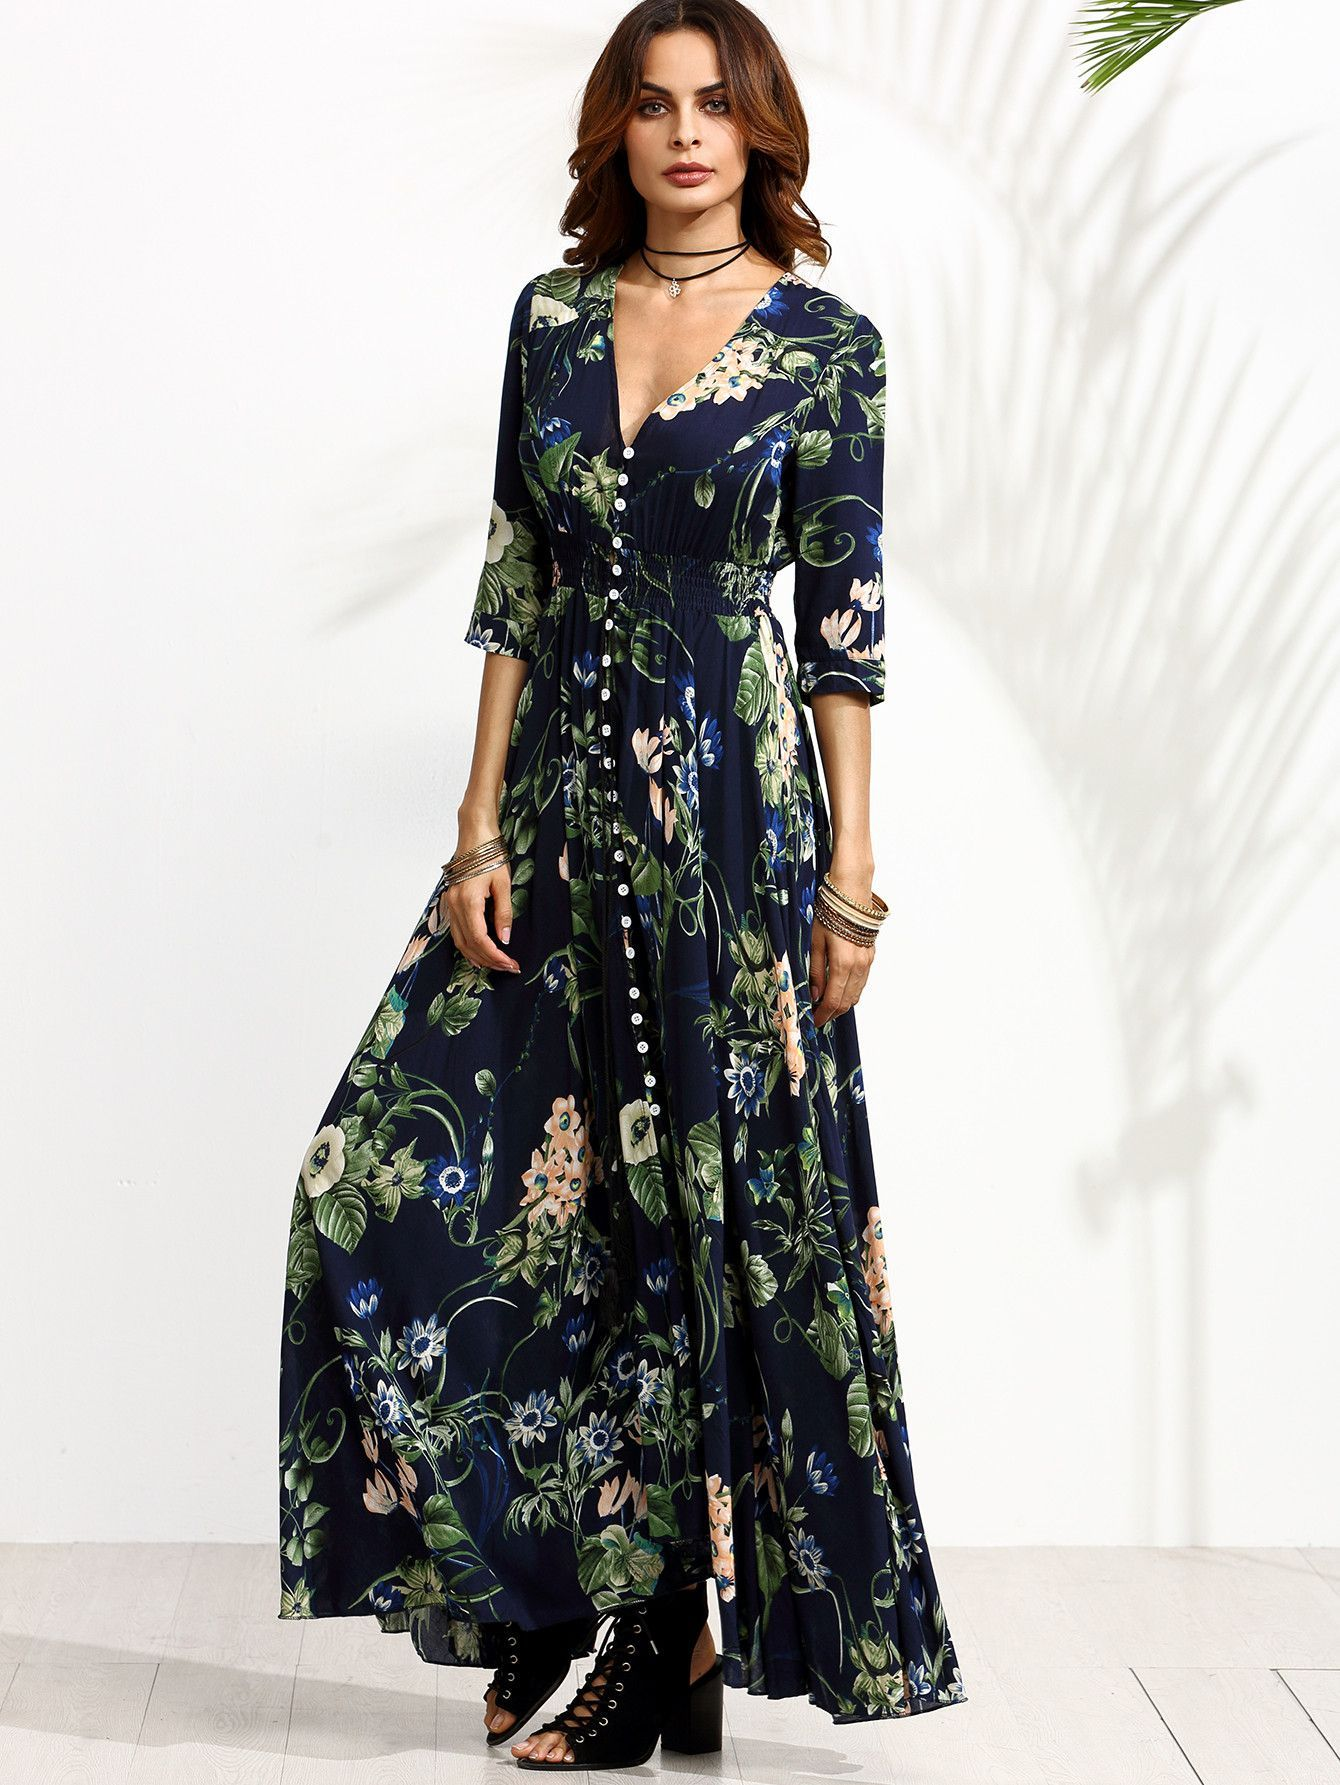 e5595f027fbcf Navy Floral Print 3/4 Sleeve Drawstring Button Dress in 2019 ...